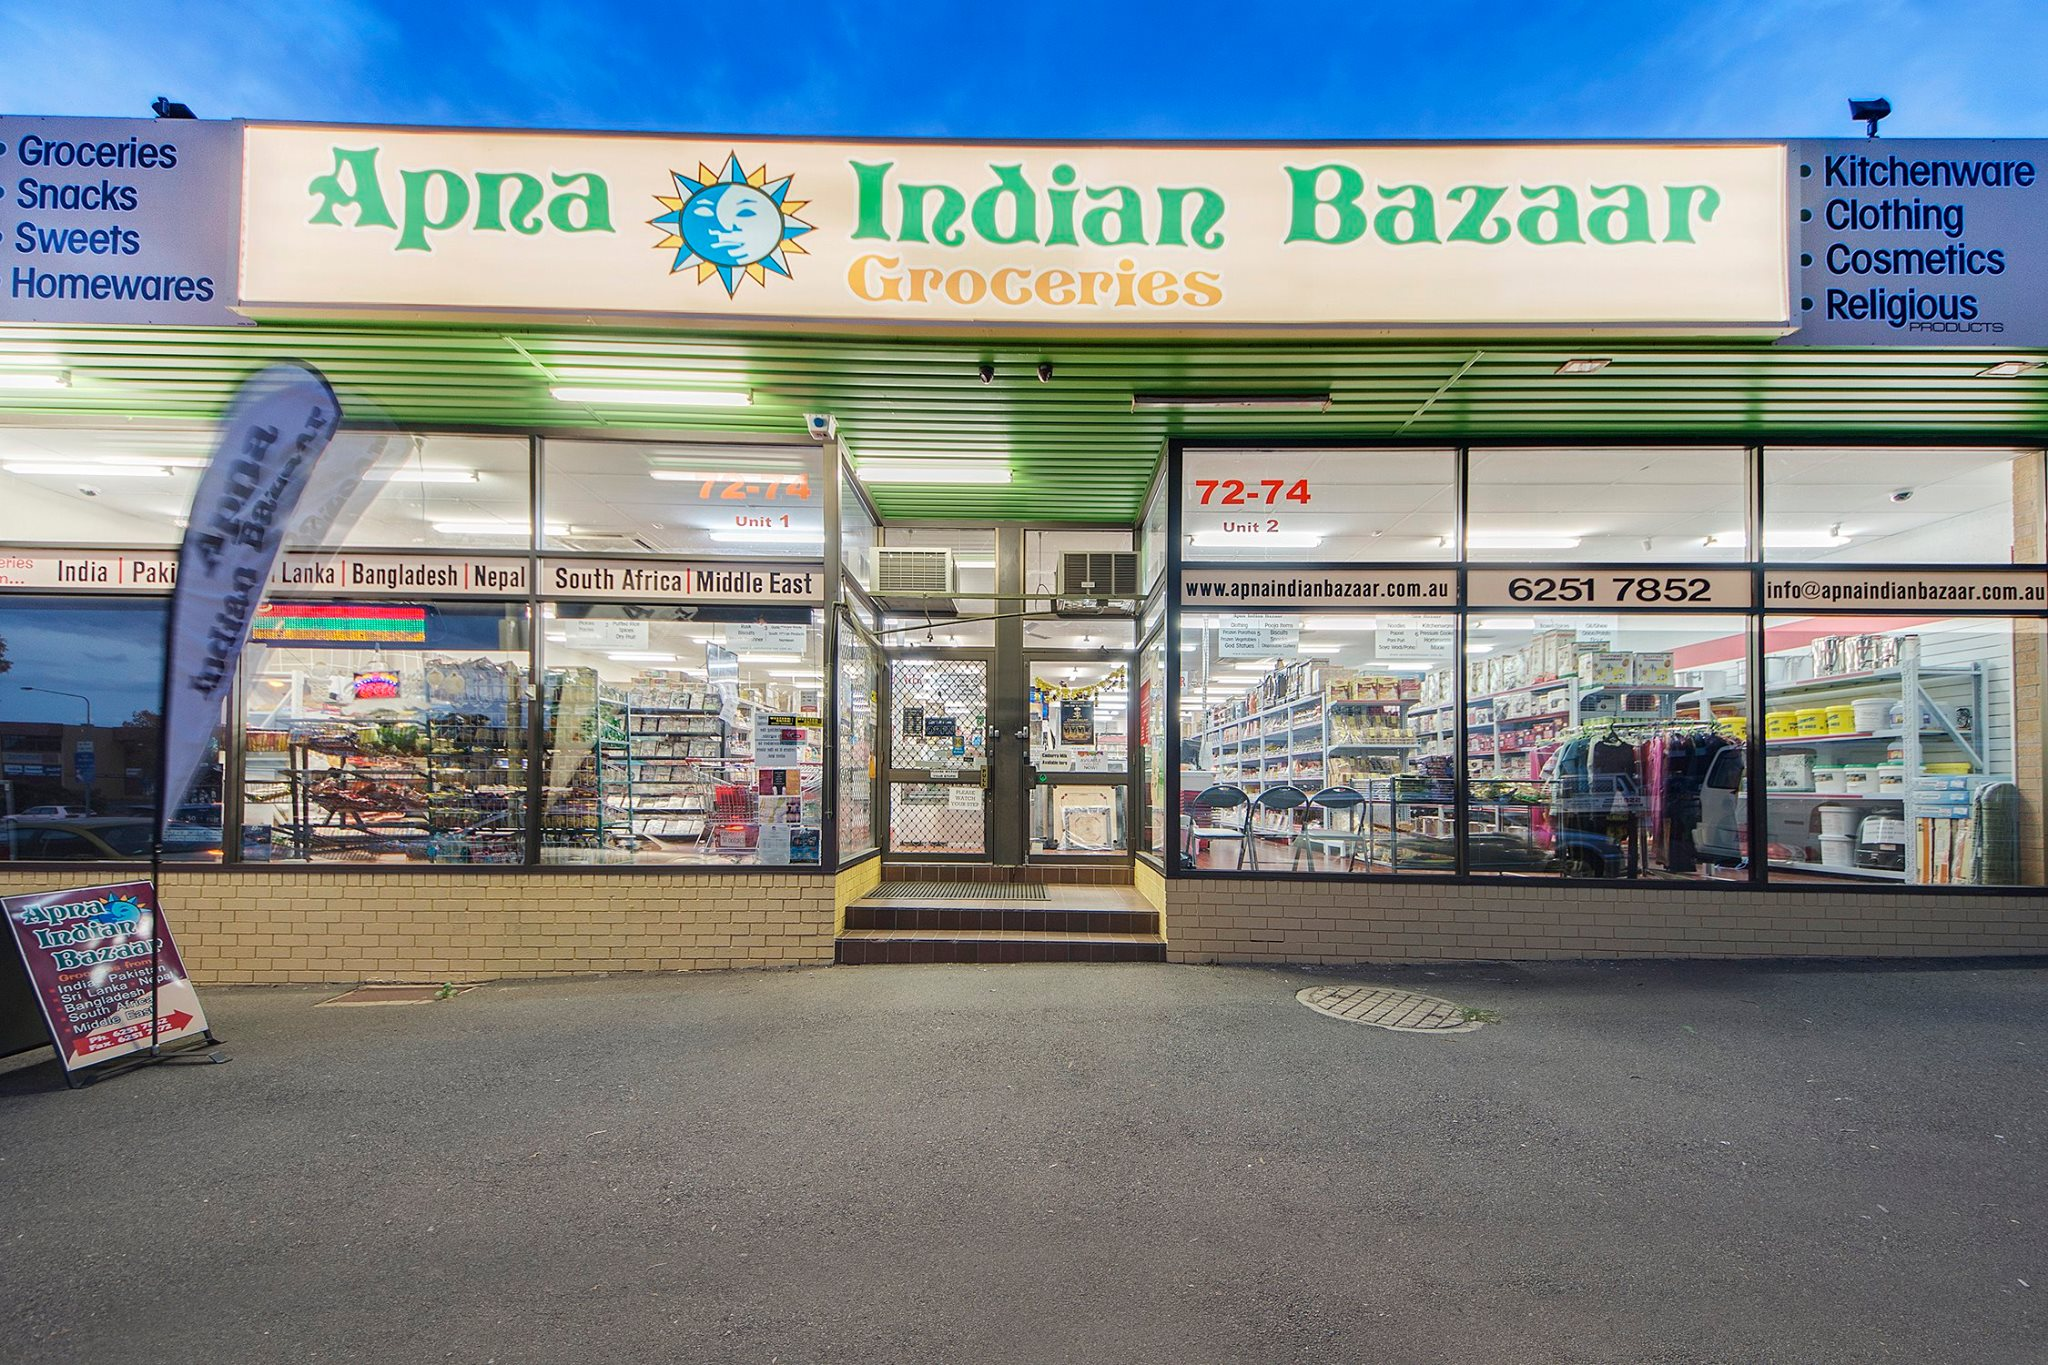 Apna Indian Bazaar